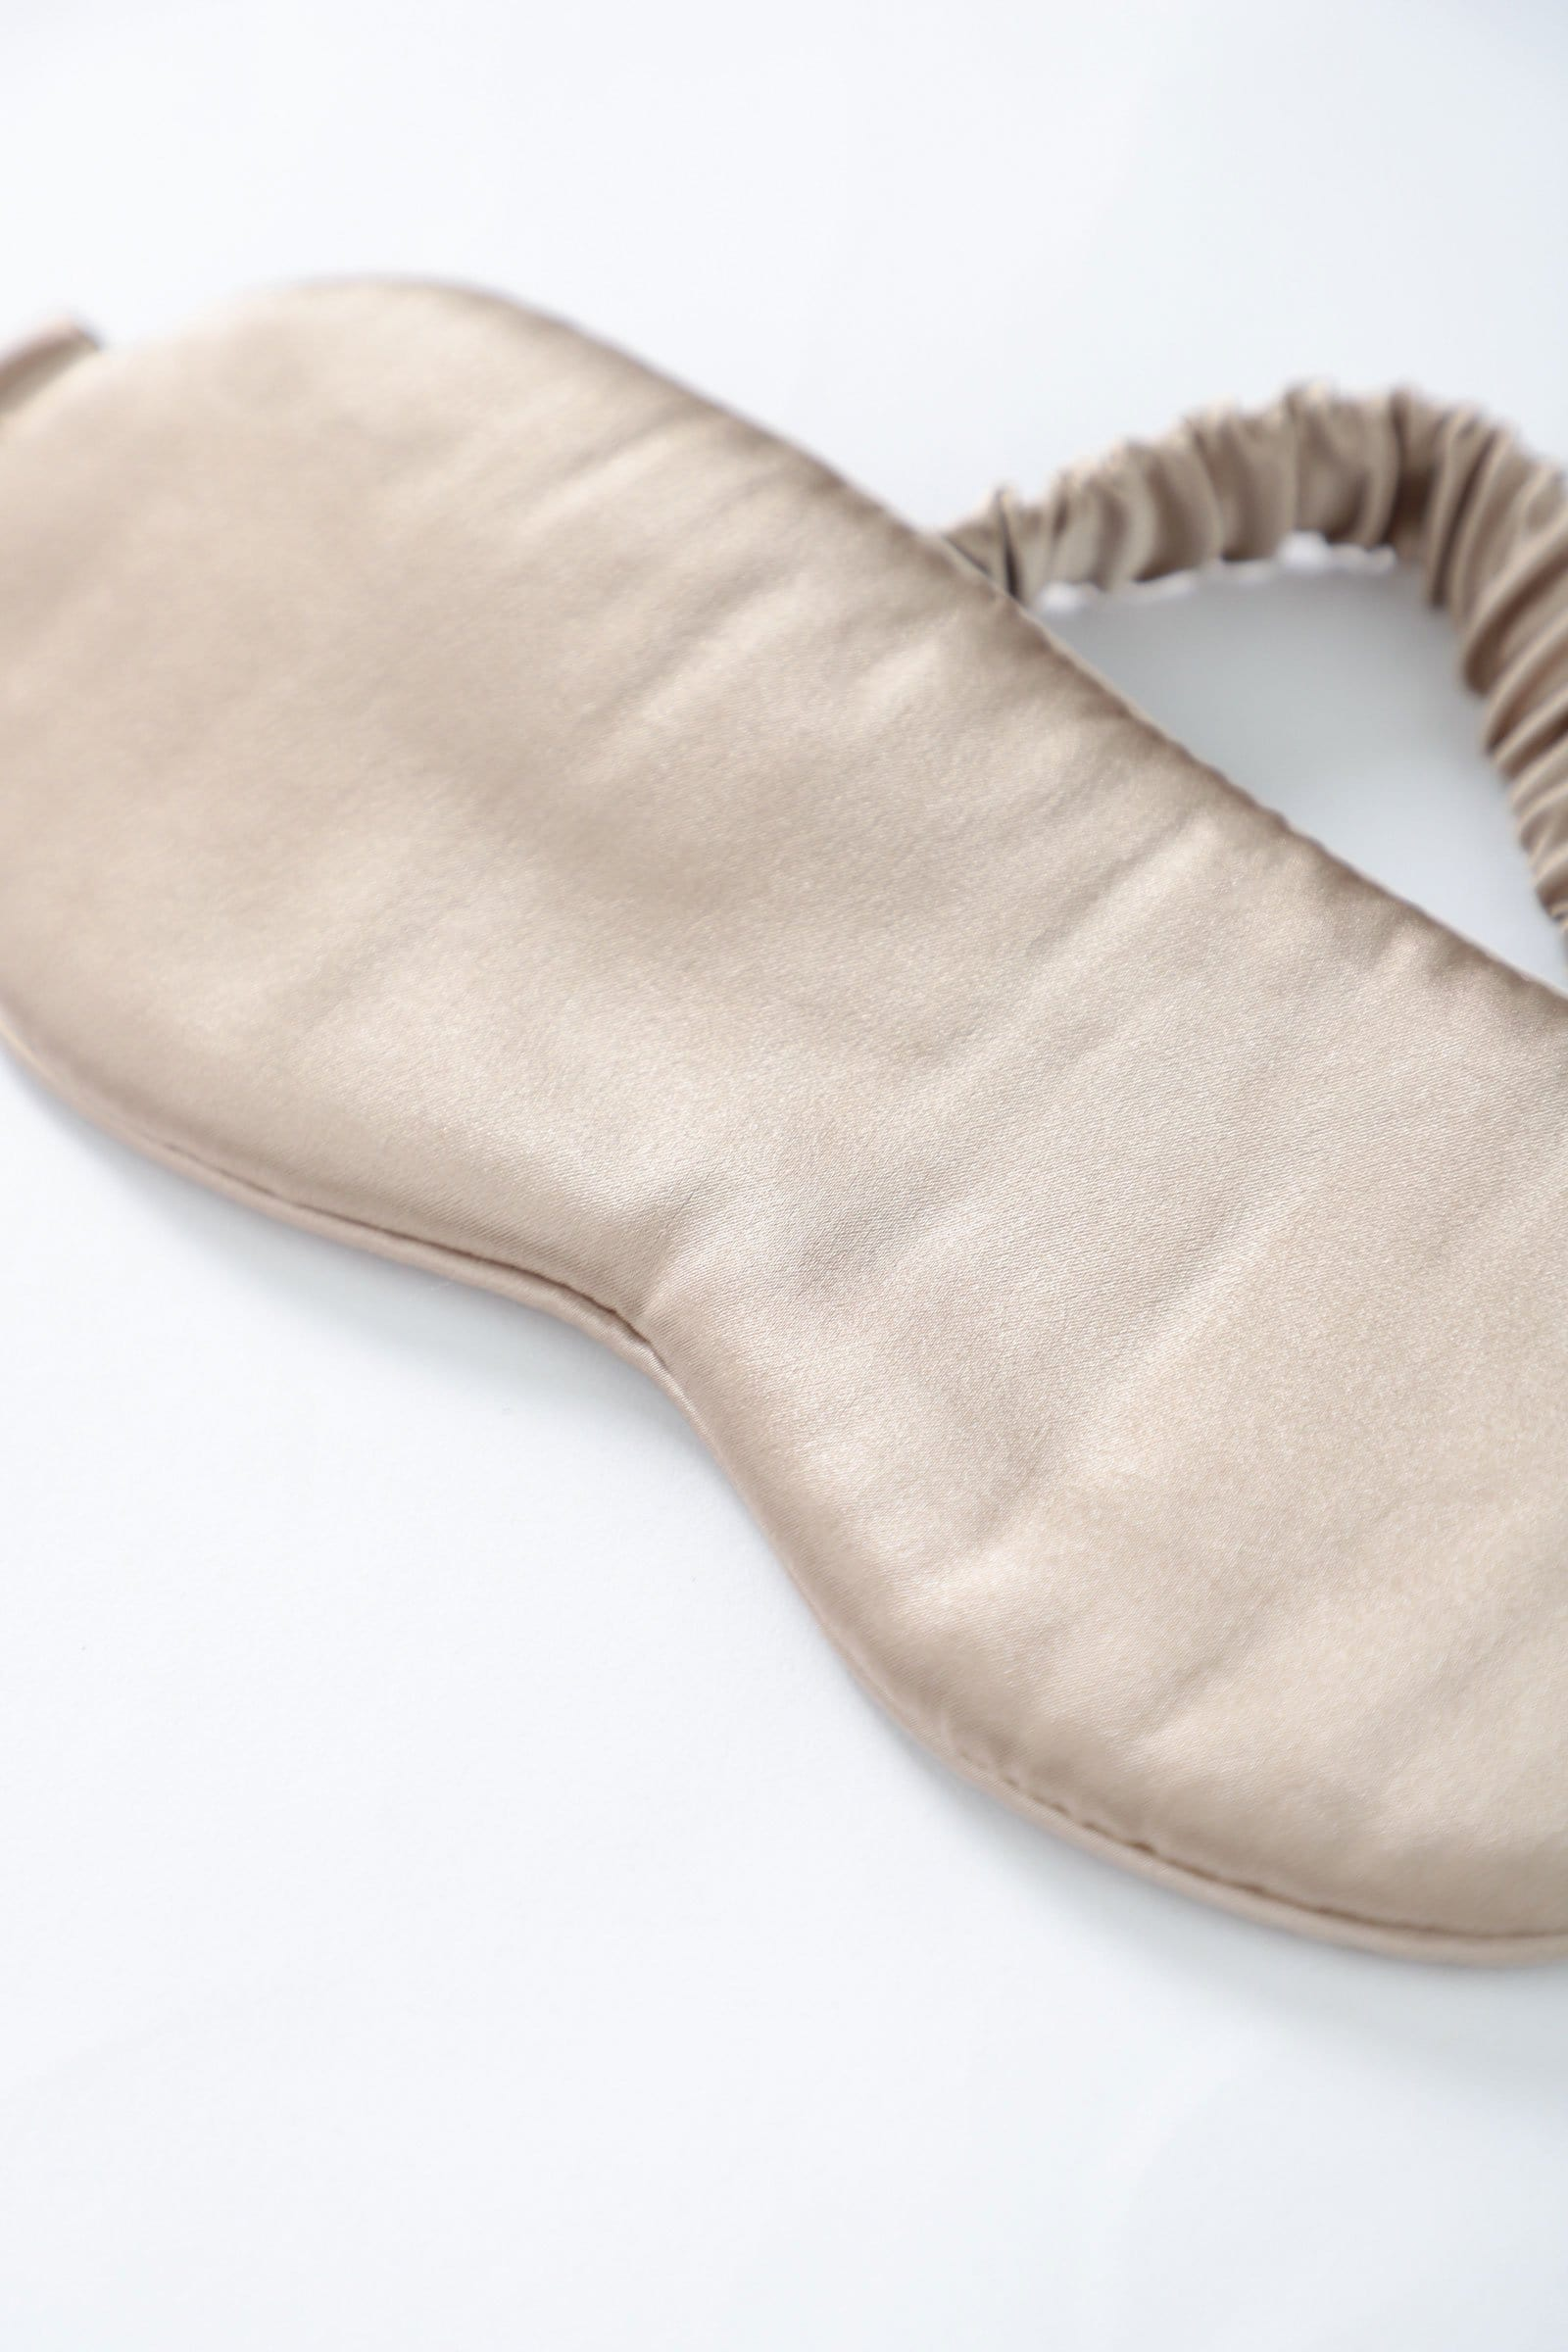 Comfort Champagne Silky Eyemask